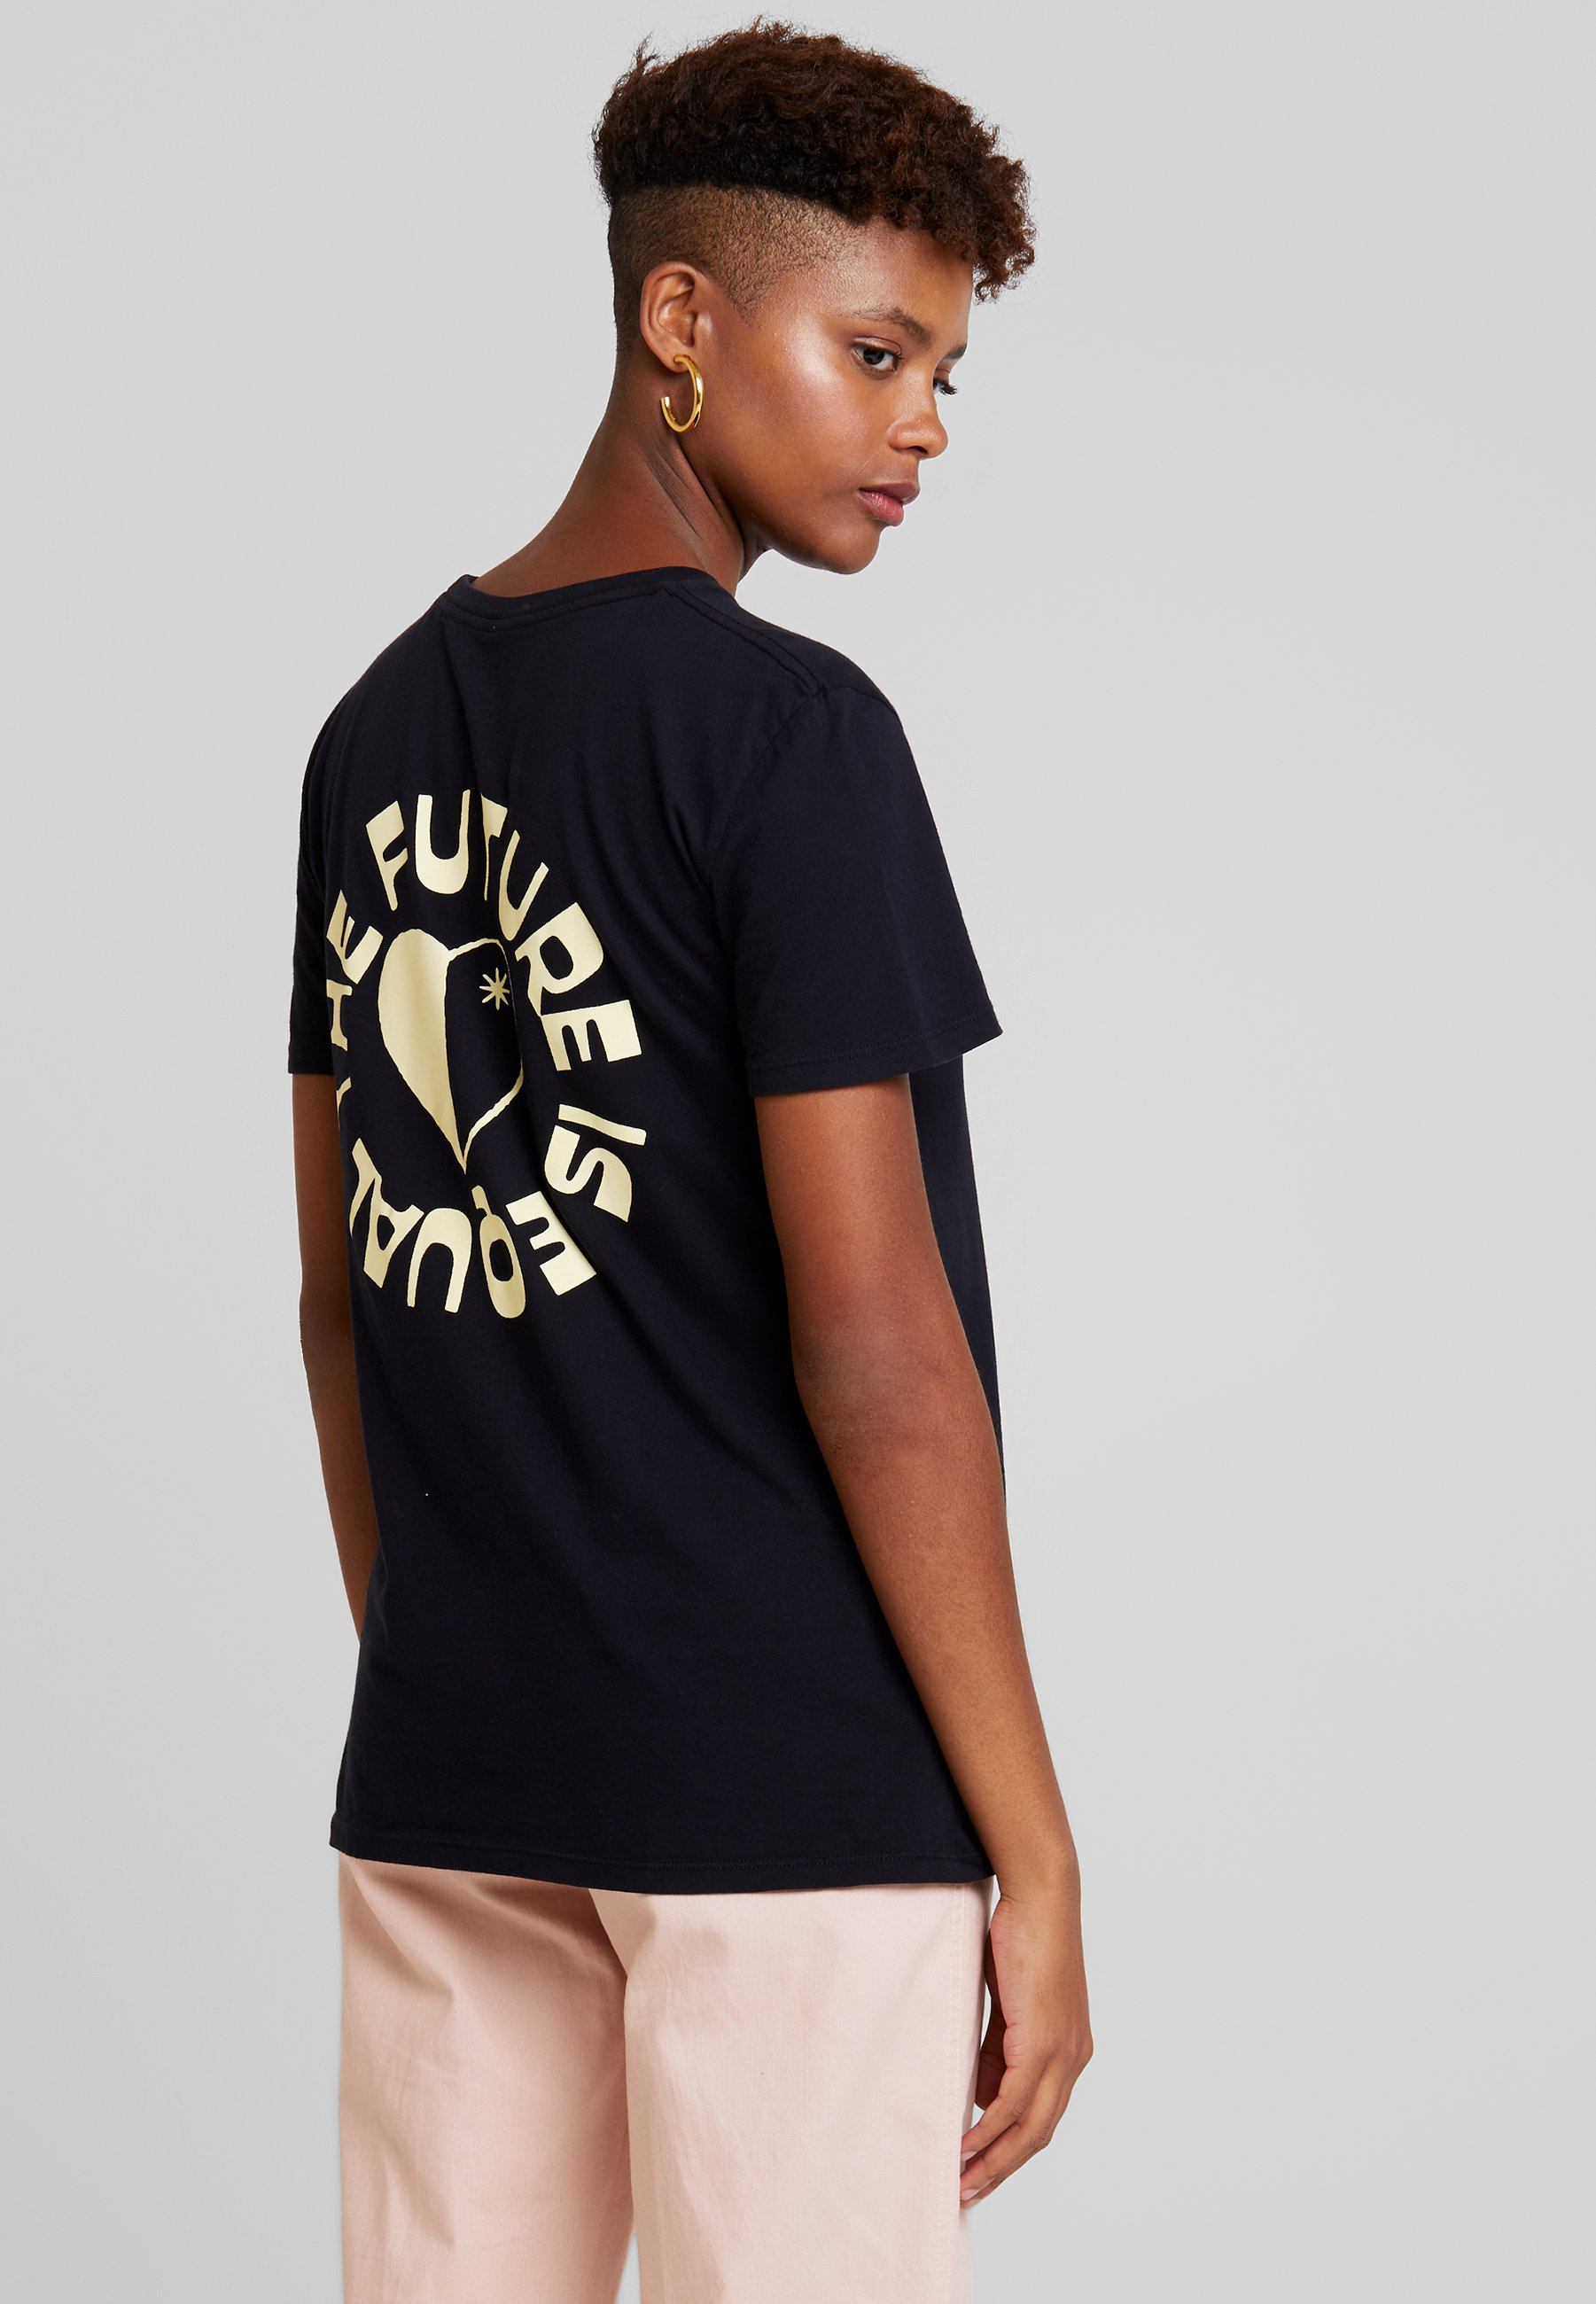 Obey Future Black The Imprimé Is Clothing shirt EqualT 35jRq4AL